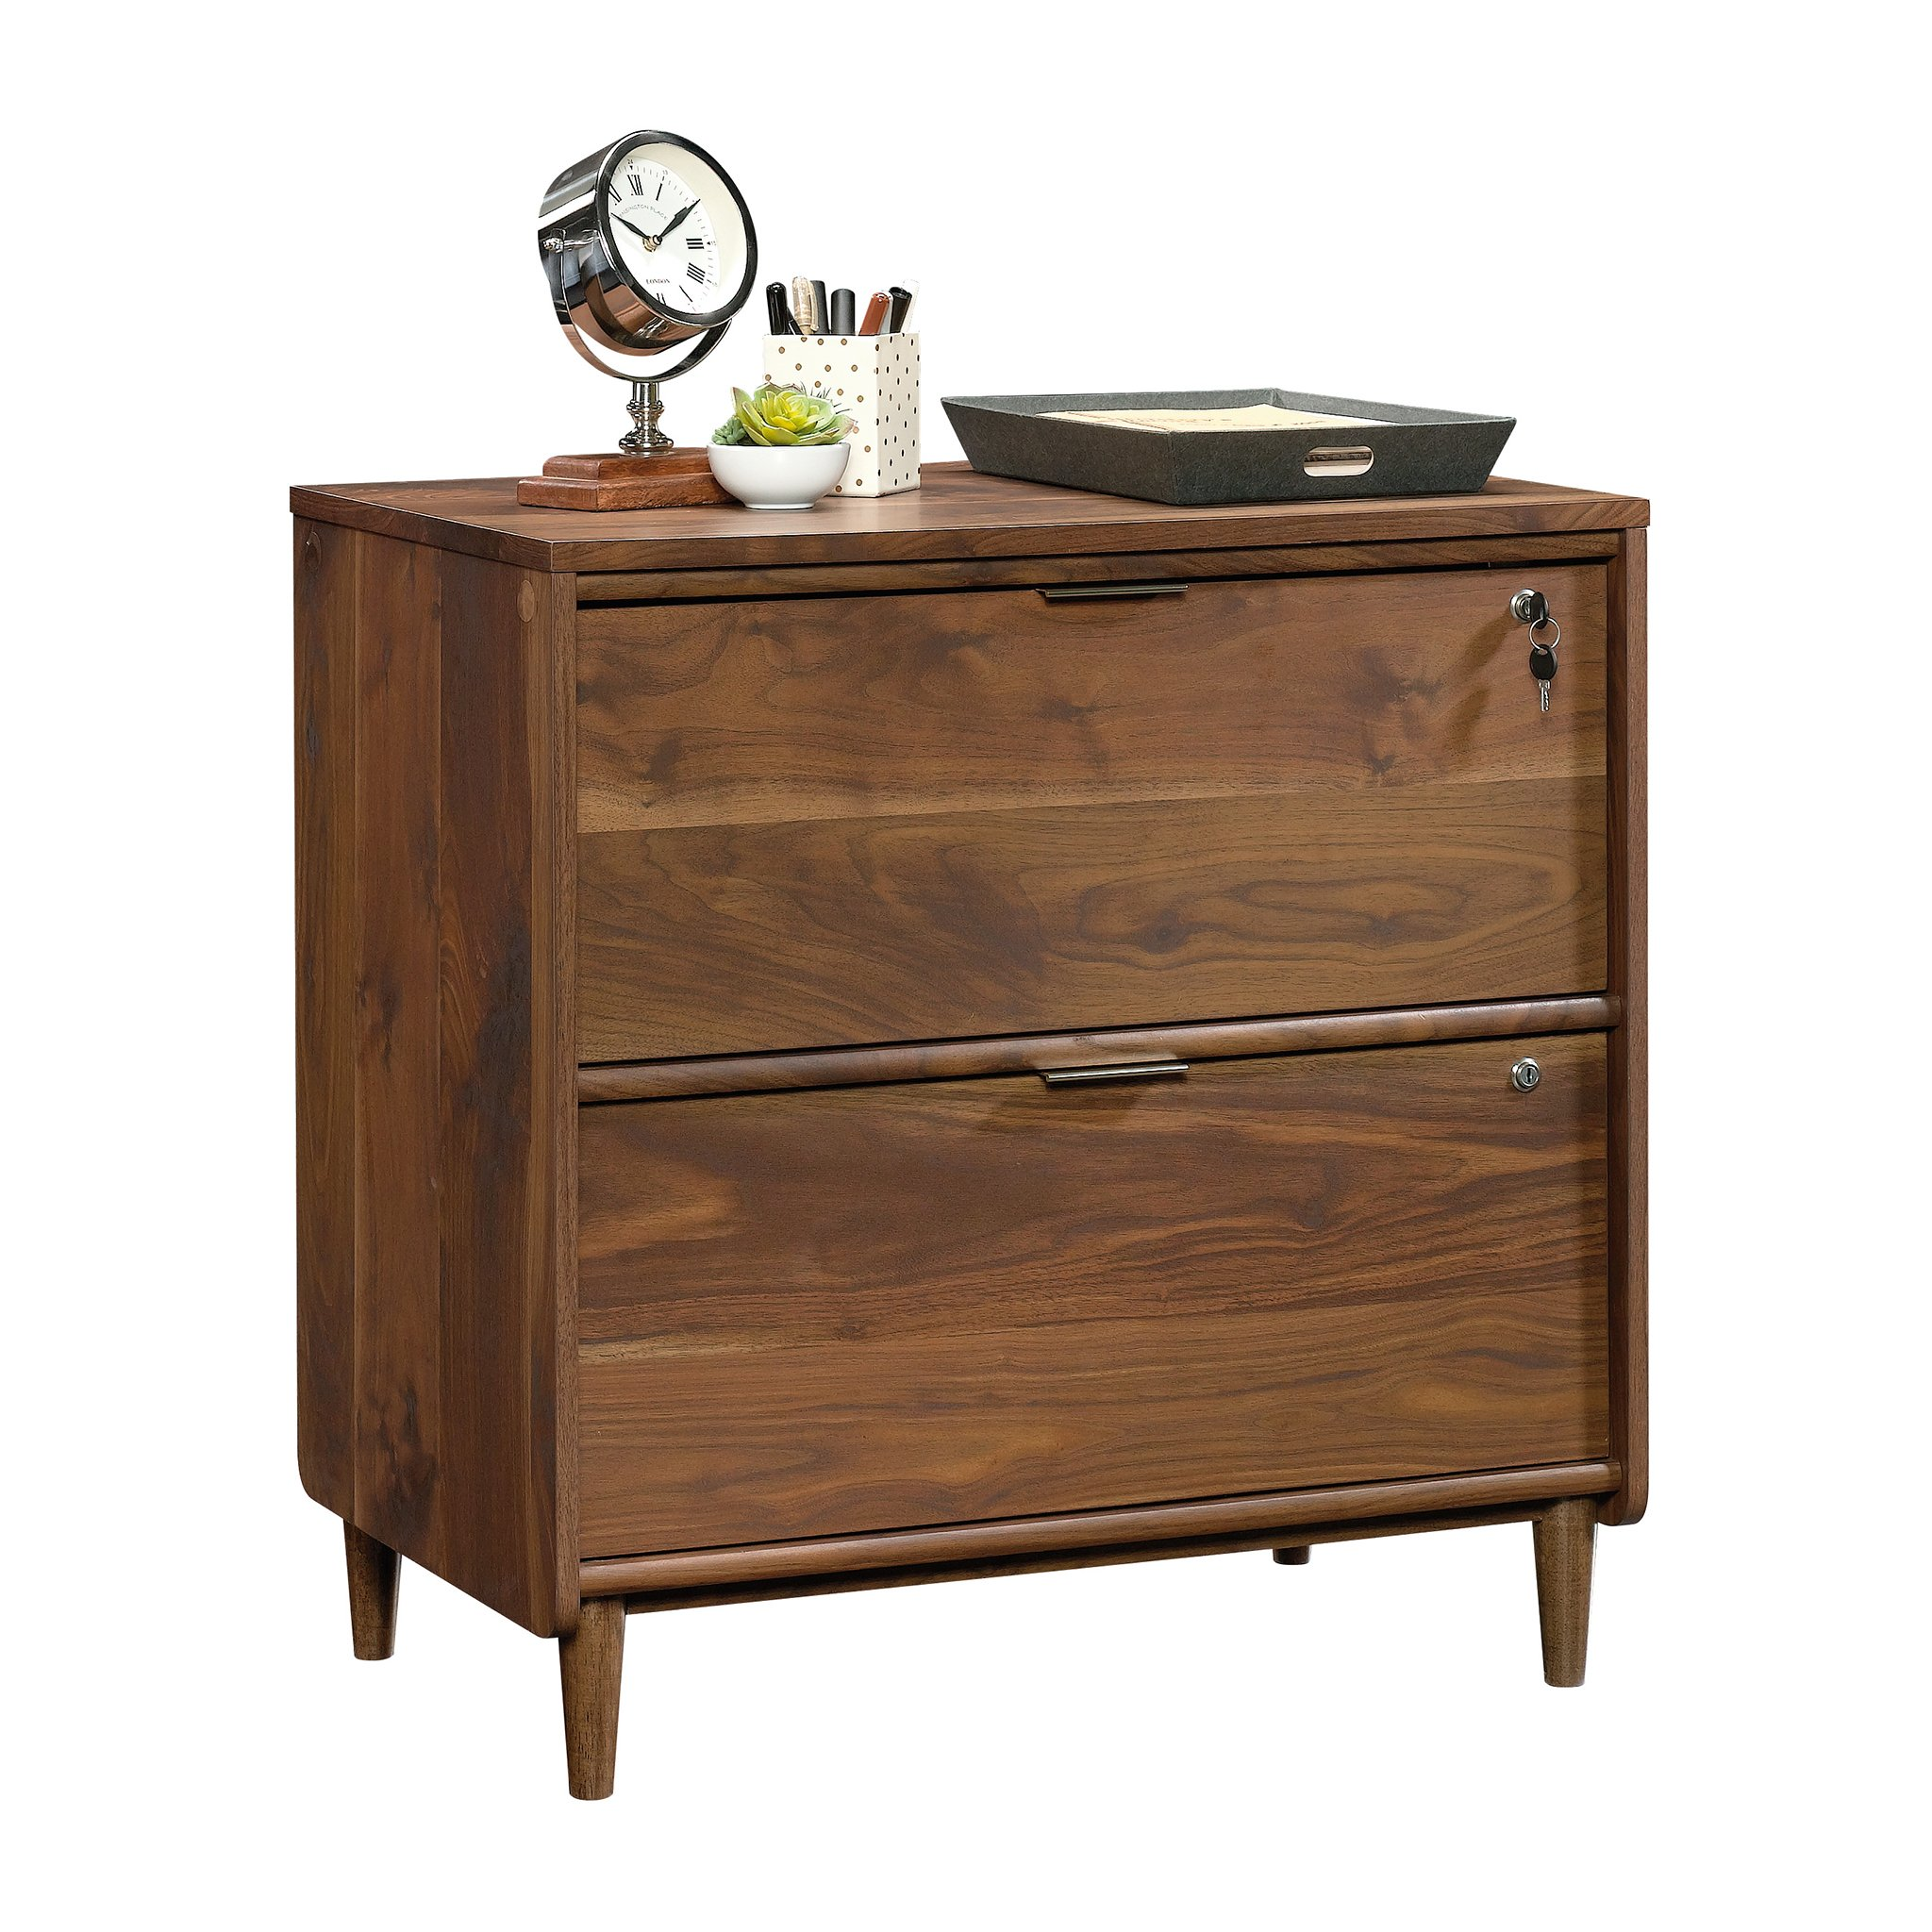 Sauder 421114 Clifford Place Lateral File, L: 29.53'' x W: 18.50'' x H: 30.28'', Grand Walnut finish